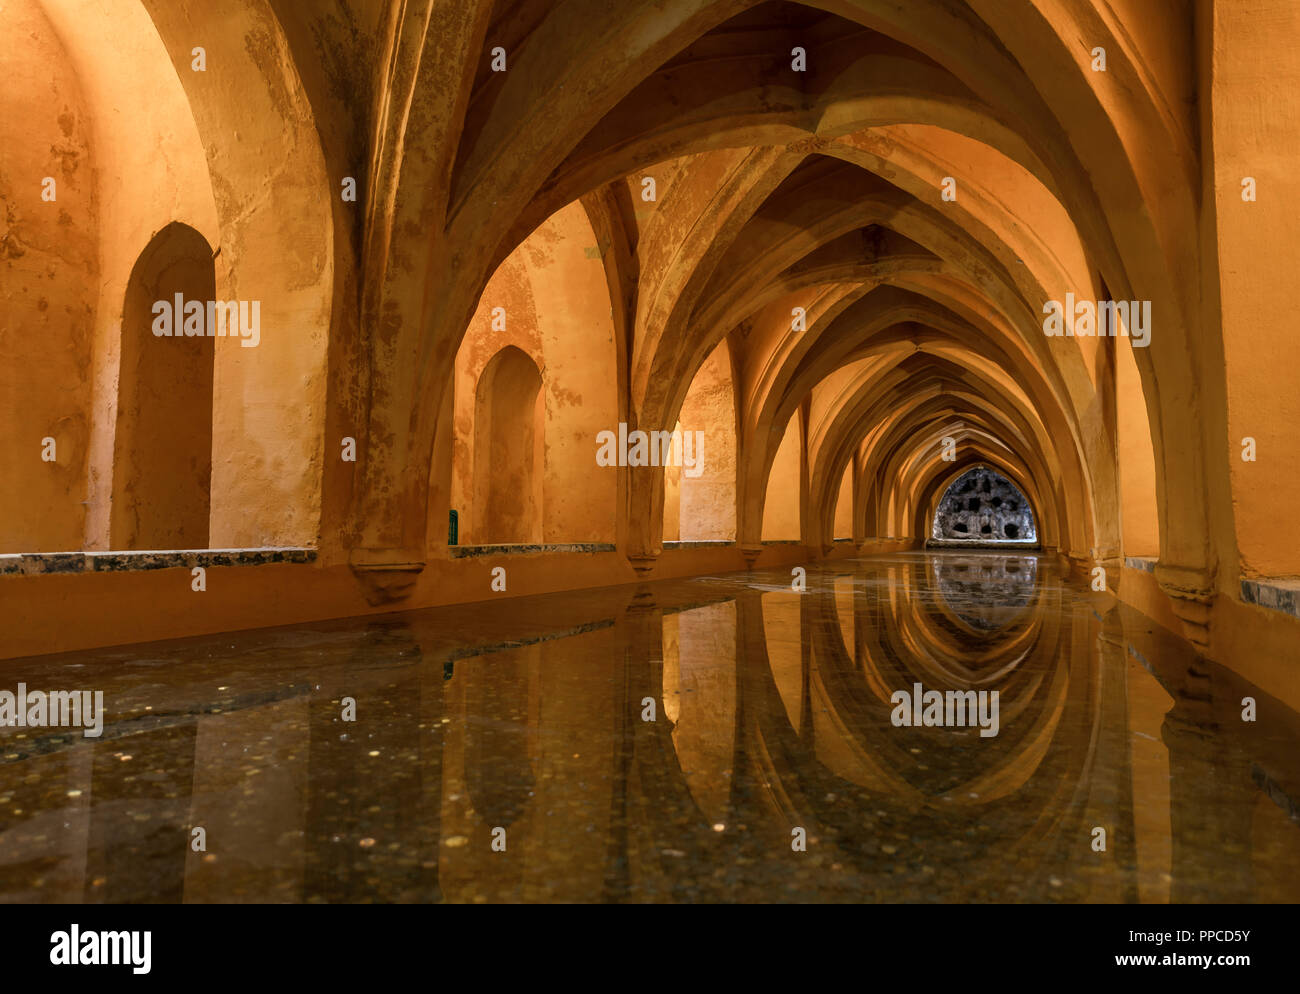 Bath in the vaulted cellar, Banos de Dona Maria de Padilla, Royal Residence, Real Alcazar Palace, Reales Alcazares, Seville Stock Photo